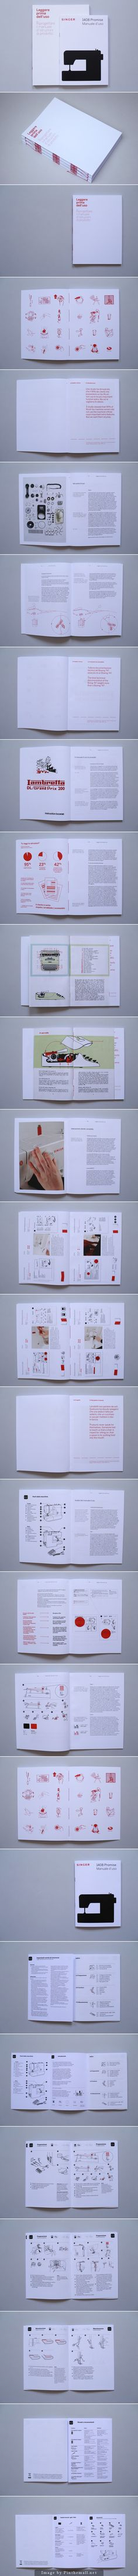 https://www.behance.net/gallery/16696481/Leggere-prima-delluso-MA-Thesis-project... - a grouped images picture